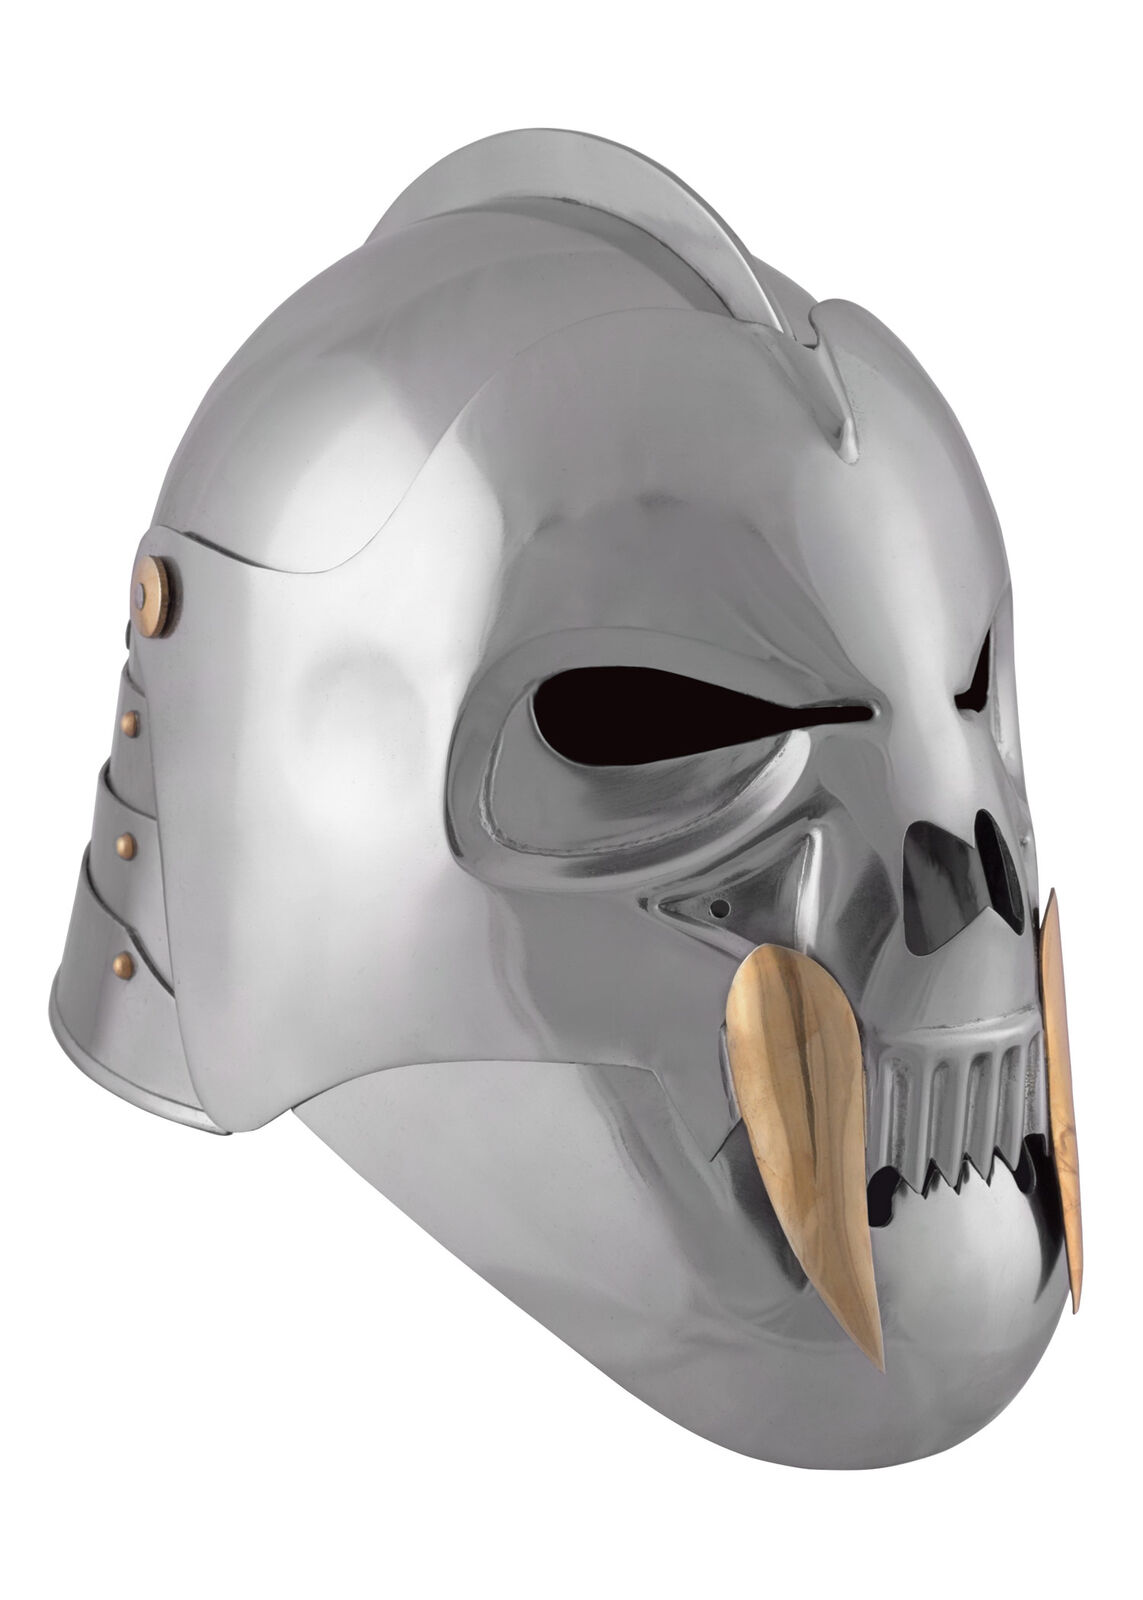 The Skull Skull Skull Celeta, Orc Helmet from steel - LARP Fantasy Bascinet 9f04ed